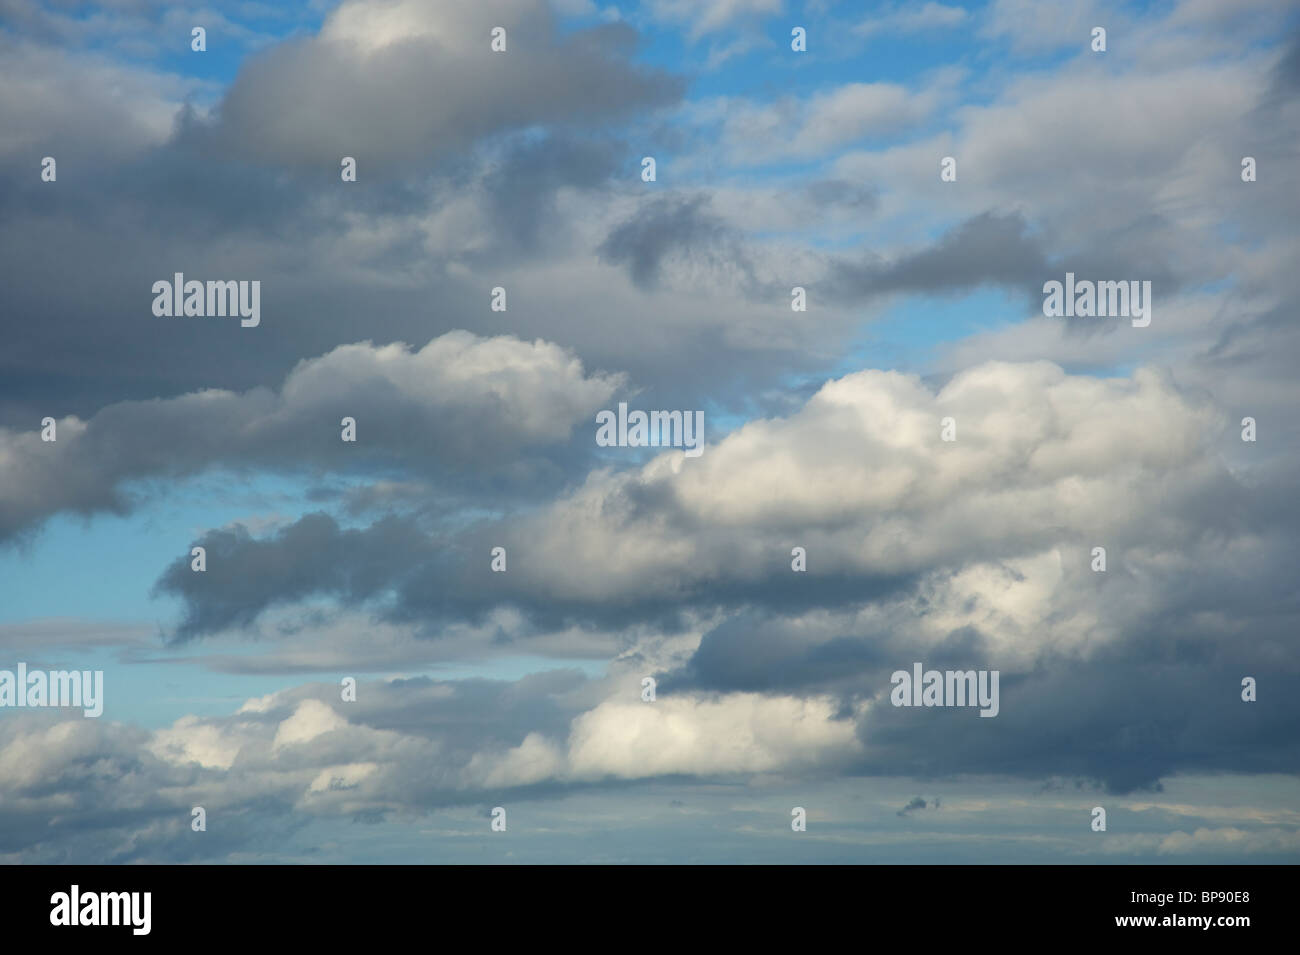 Painterly sky with clouds - Stock Image